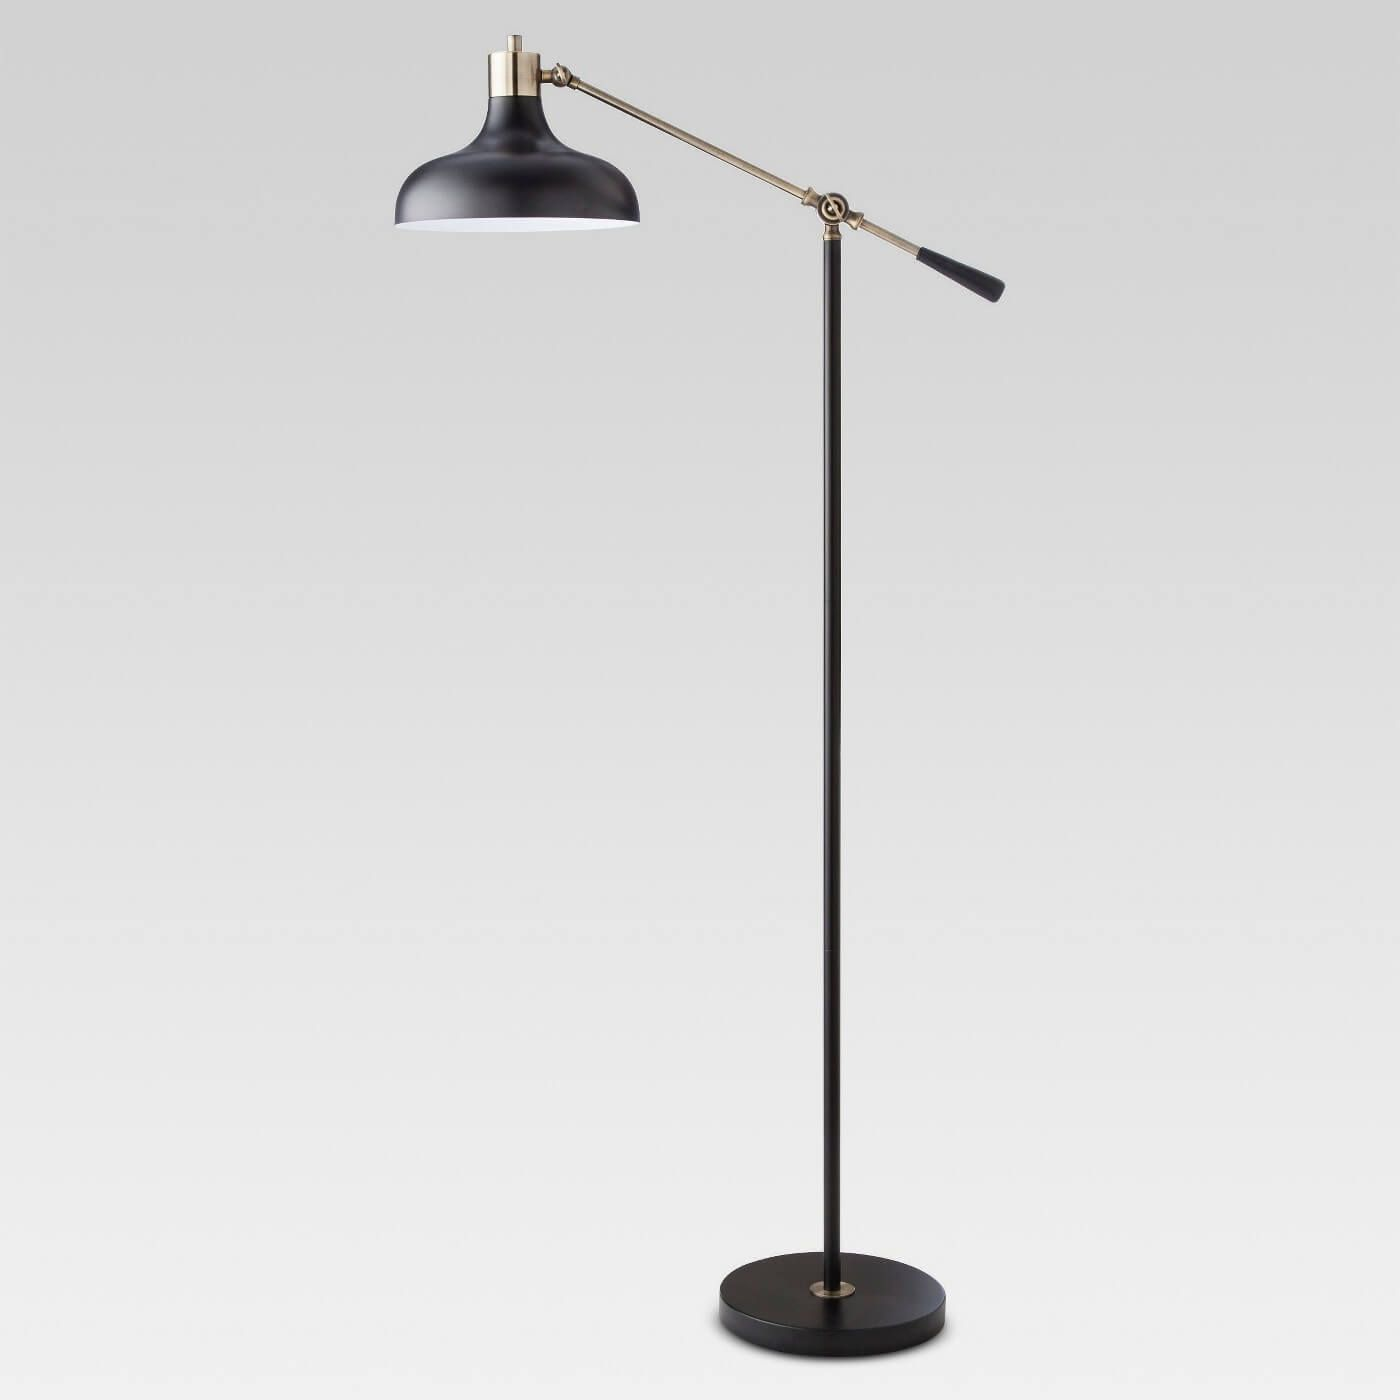 20 Target Floor Lamps That Are Chic Modern Statement Pieces